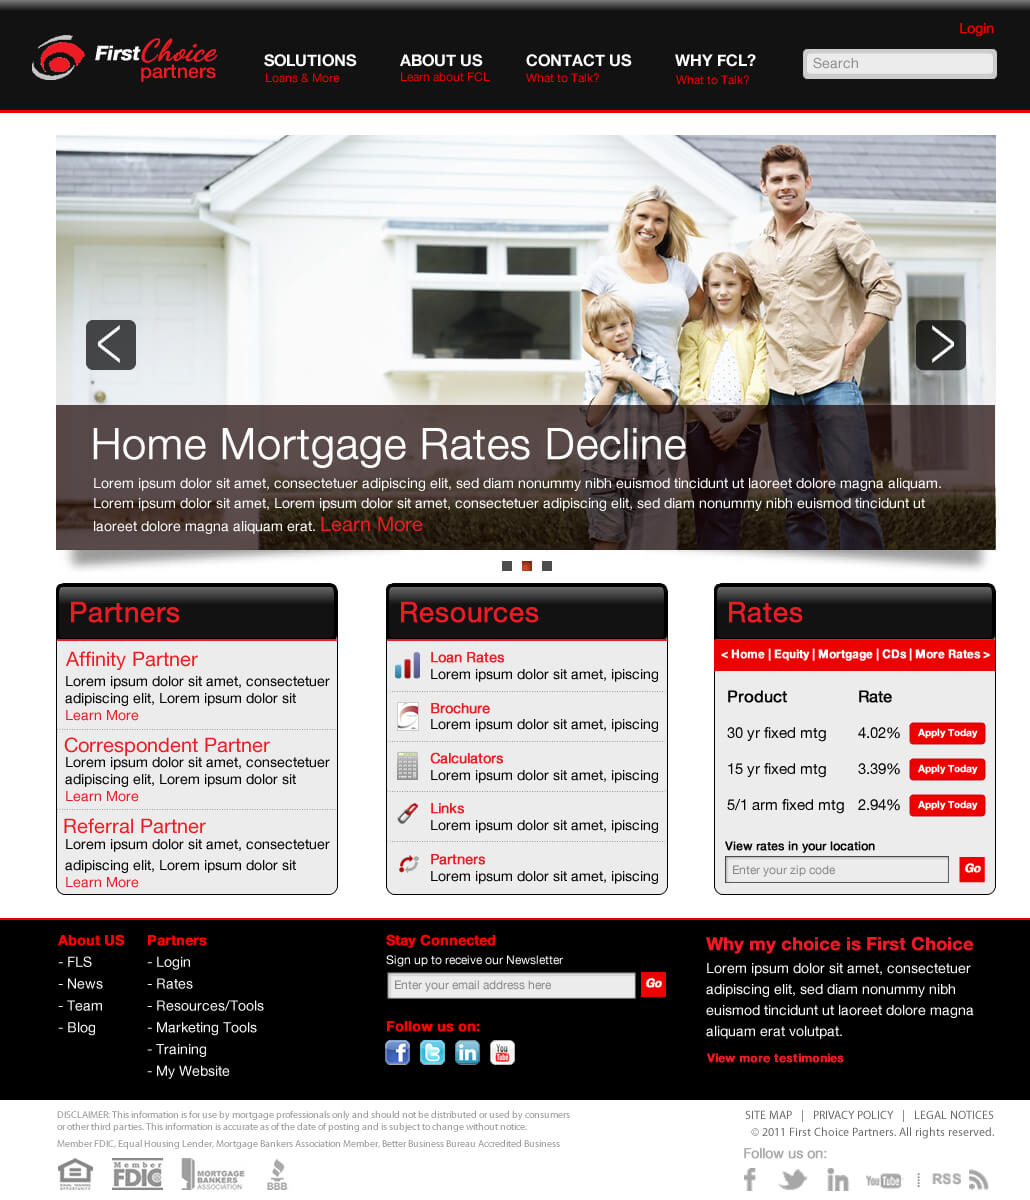 First-Choice-Partners-Home-Mortgage-Loans-Website-Design-1